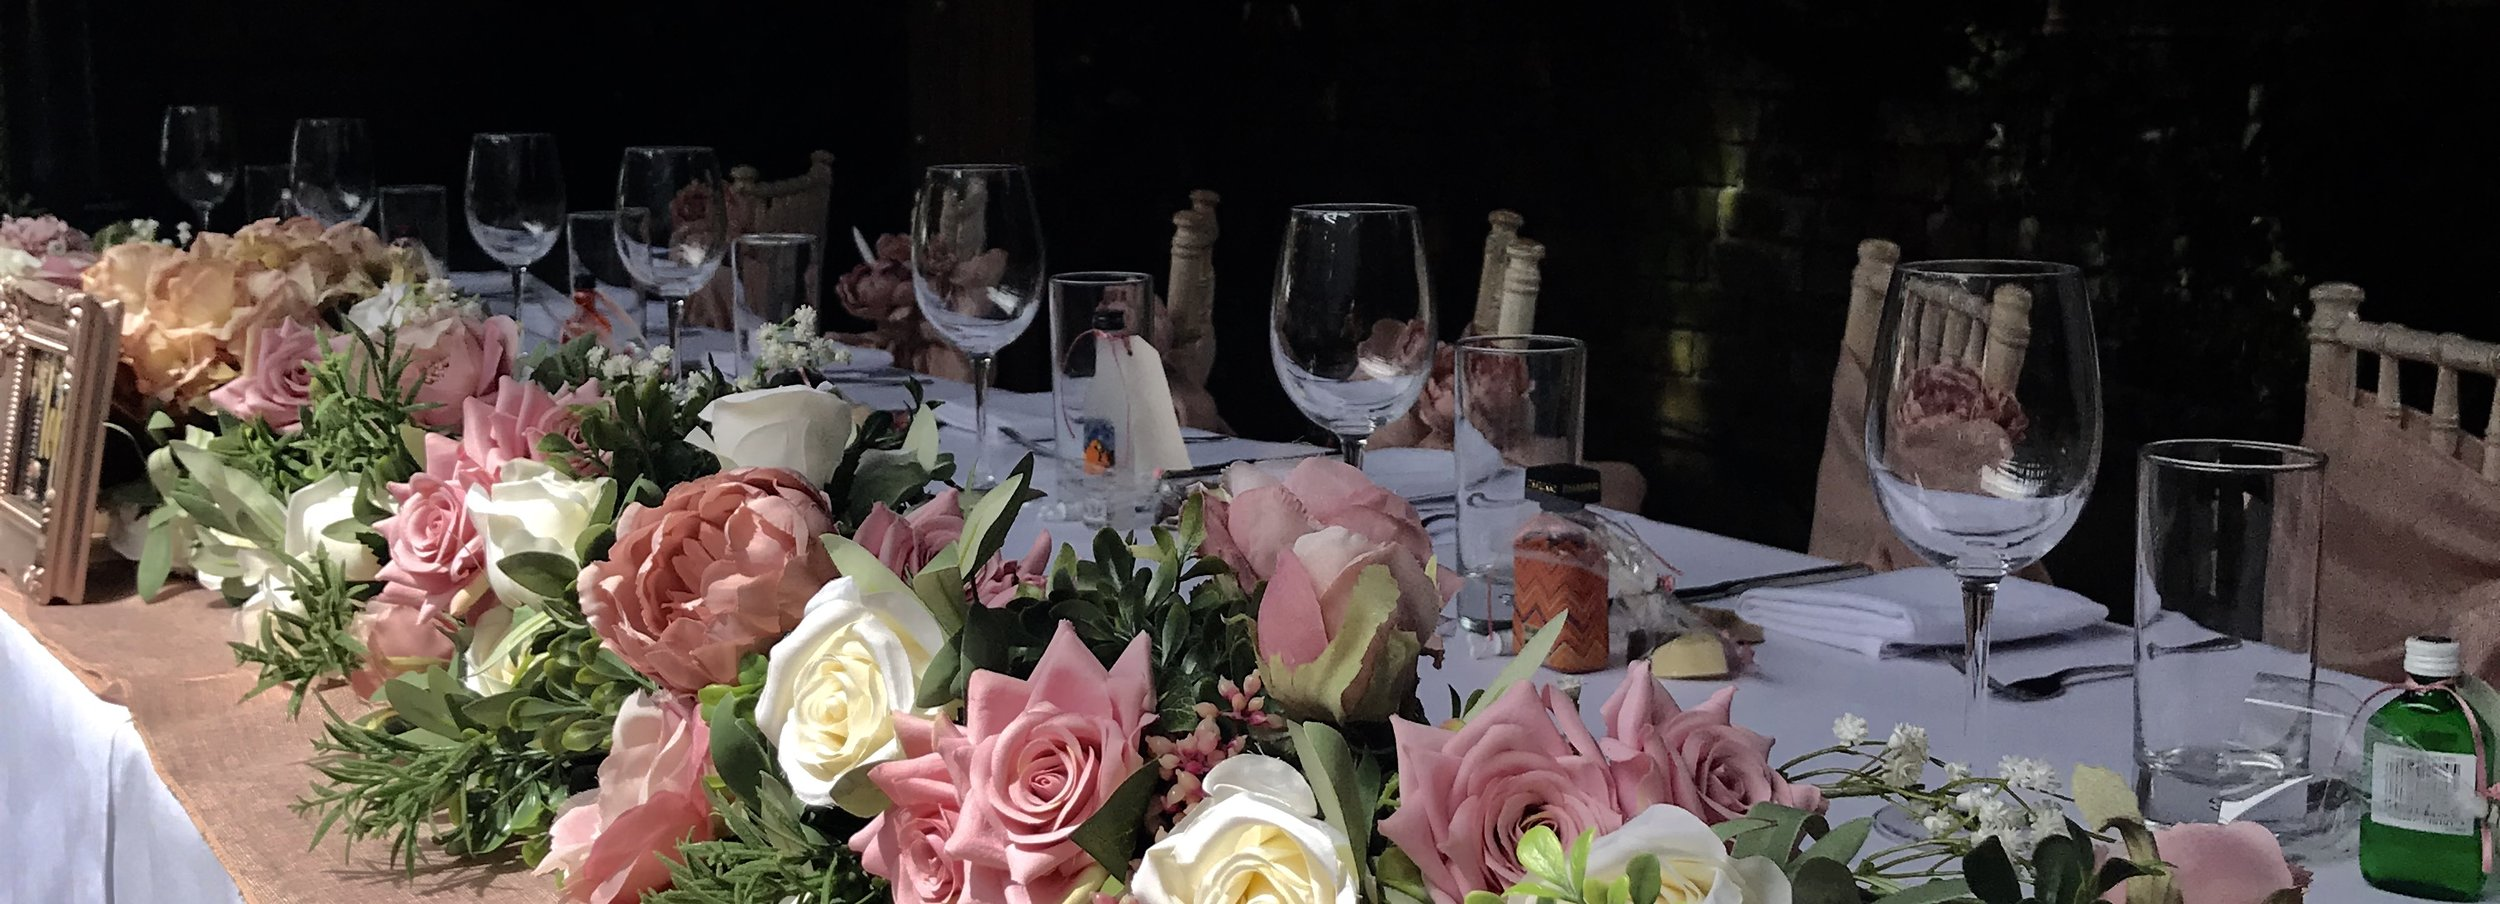 Absolutely stunning top table swagging by the uber talented Lara, to compliment the blush and rose gold theme